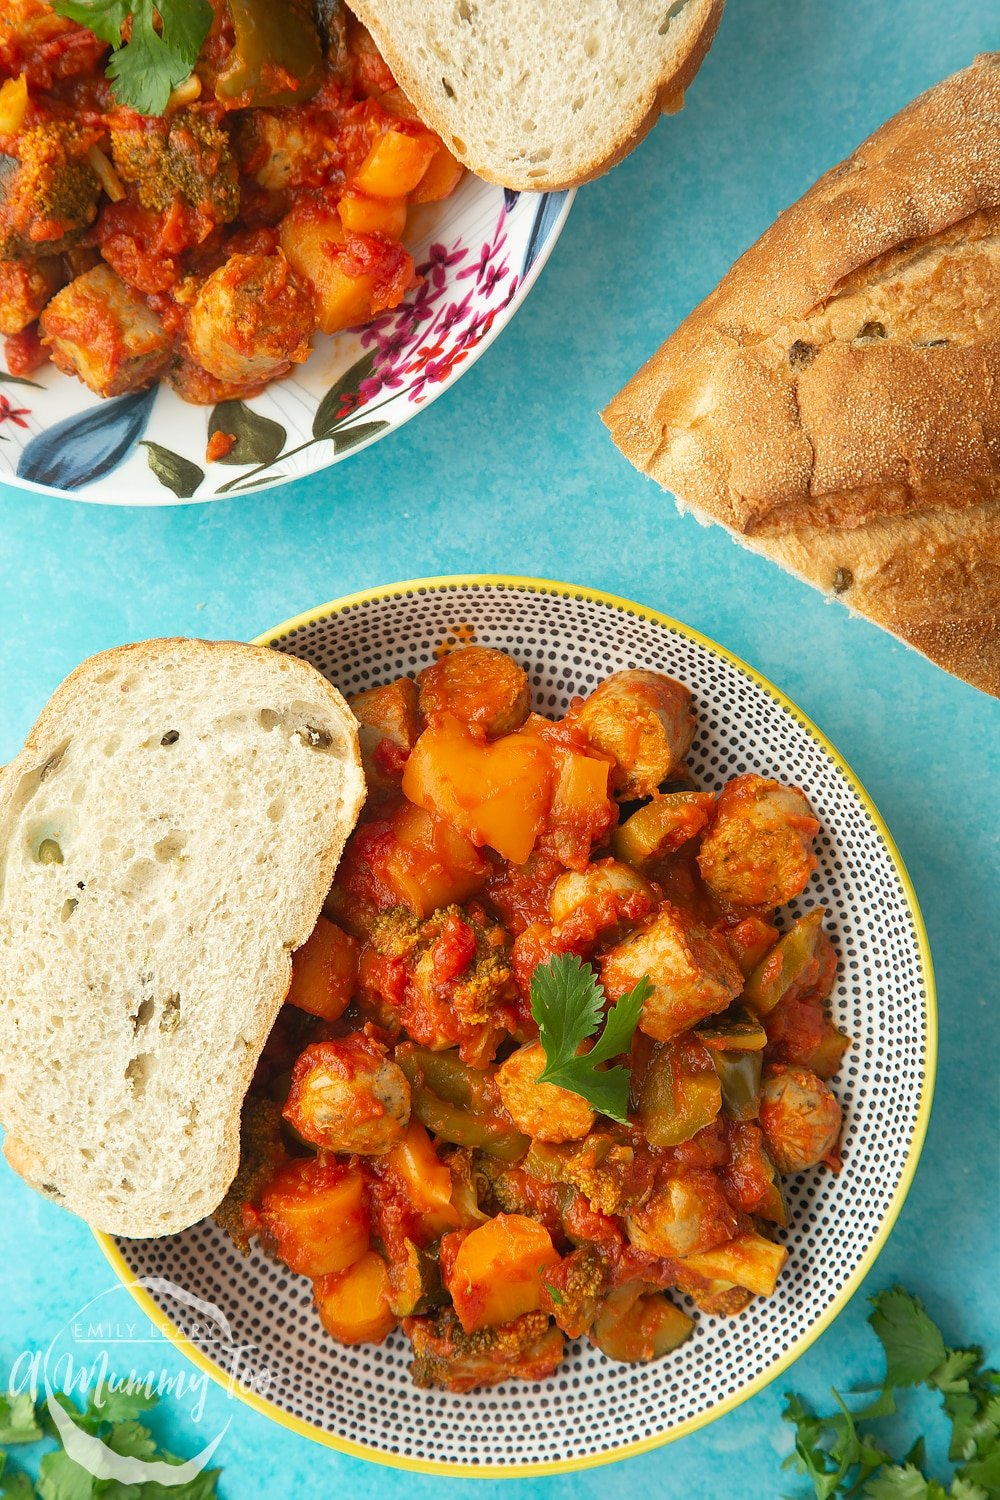 Two bowls of slow-cooked vegetarian sausage casserole on a blue background with a crusty bread roll at the side.